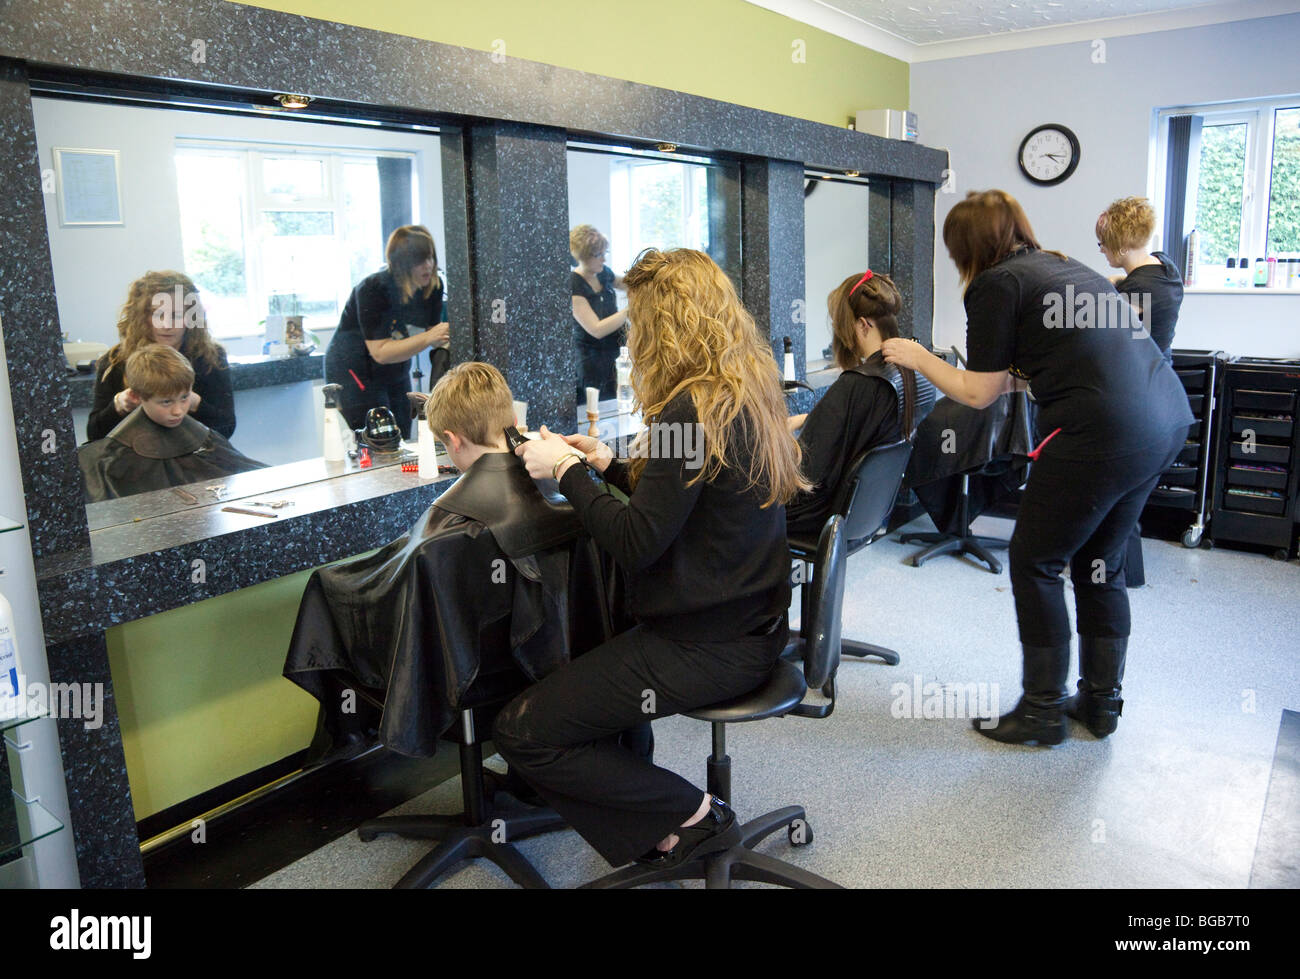 A Hairdresser Cutting Styling A Customers Hair At A